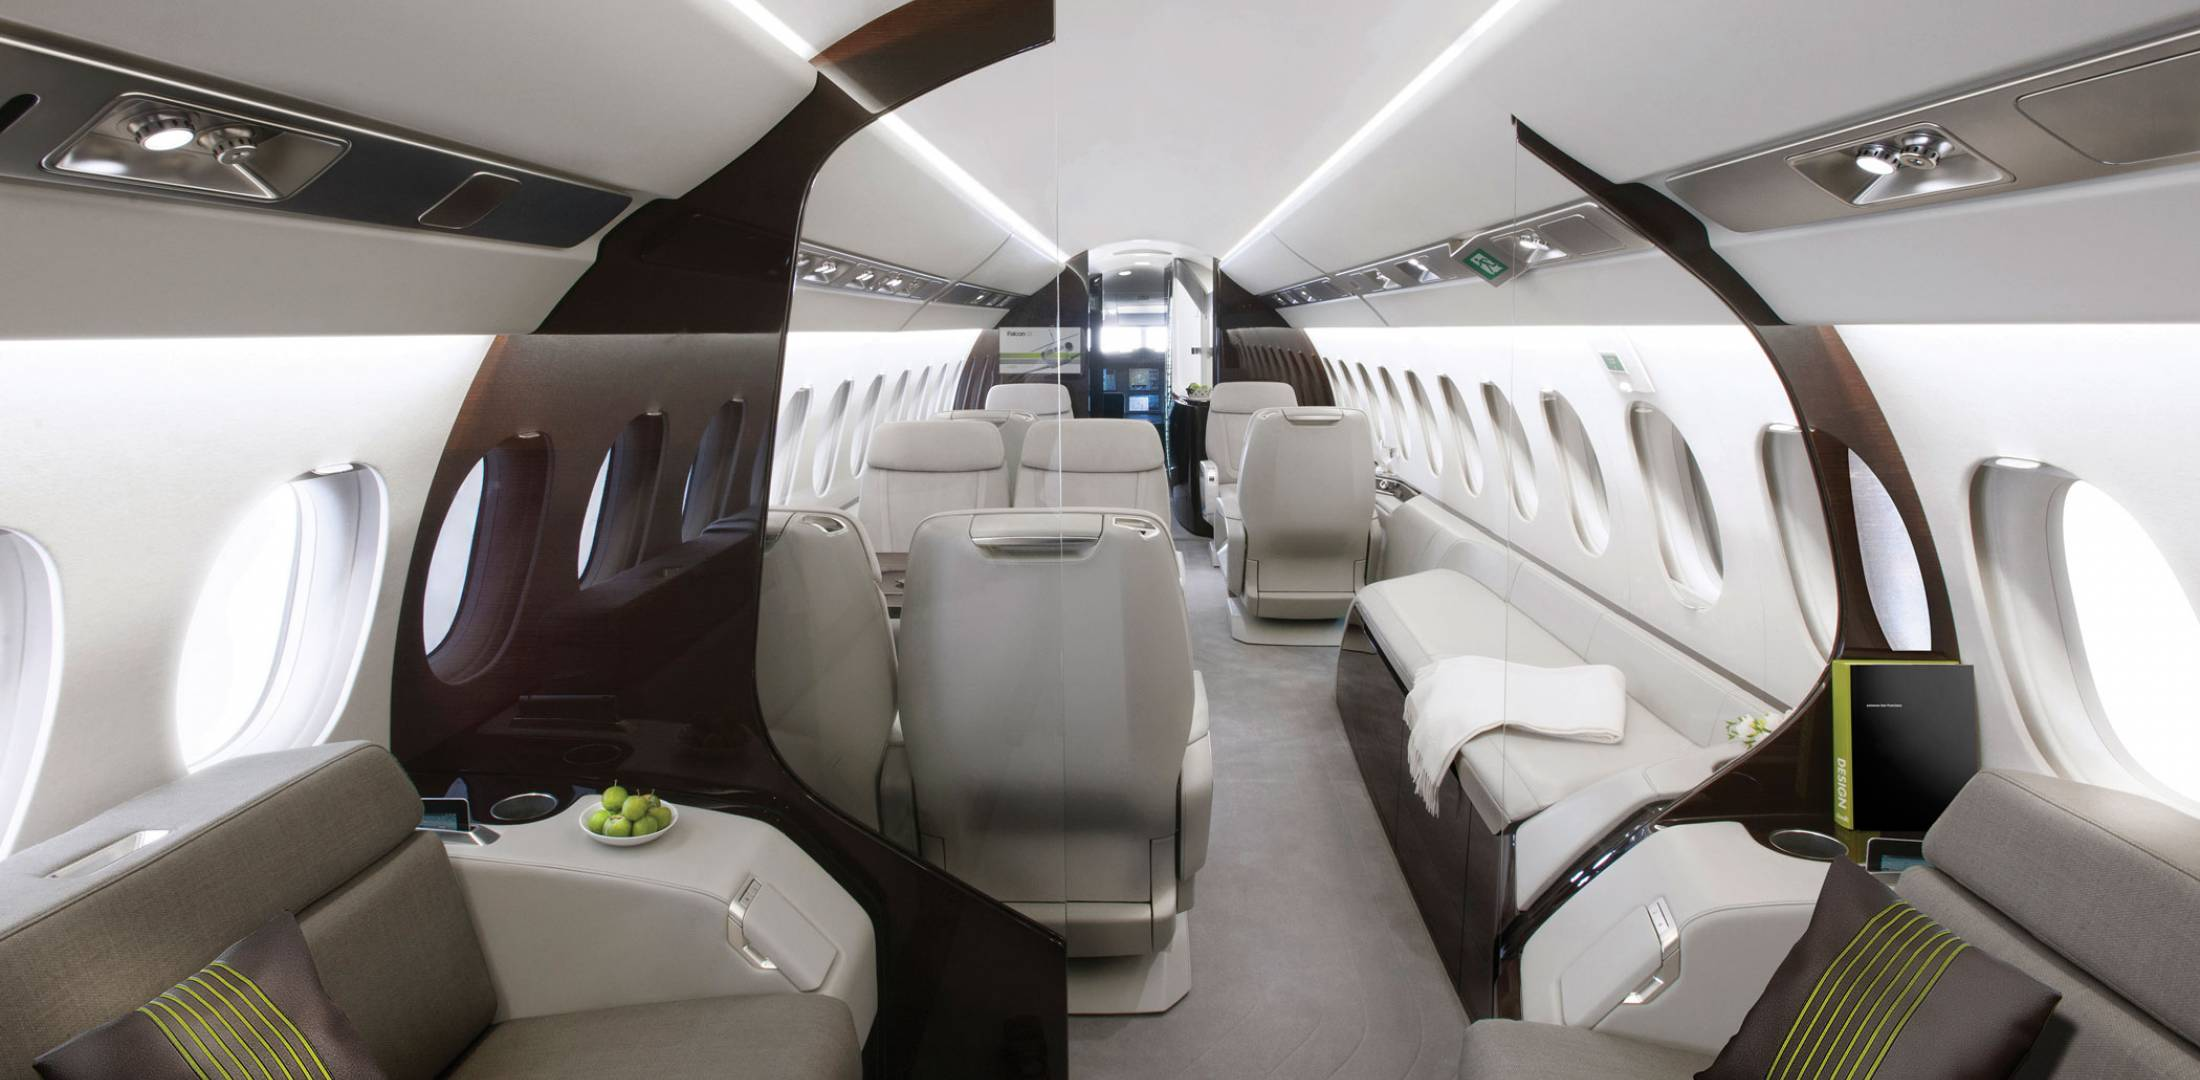 Dassault design philosophy evident in 5x 8x business for Large cabin business jets